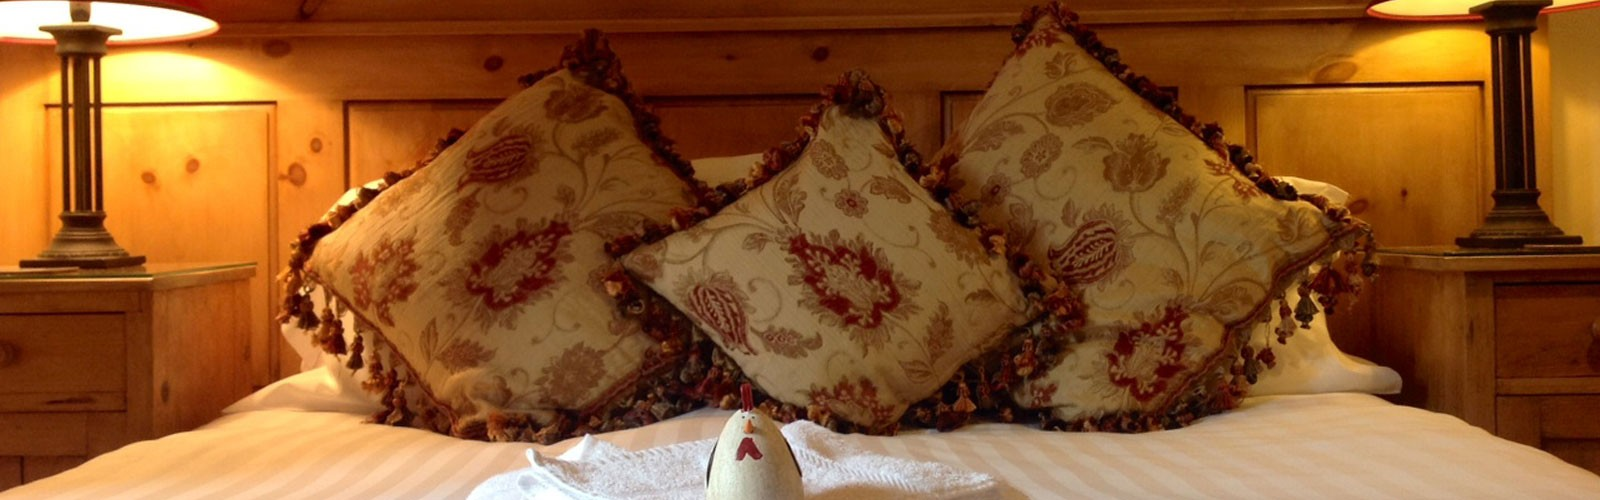 Bed & breakfast Self catering accommodation near Towcester